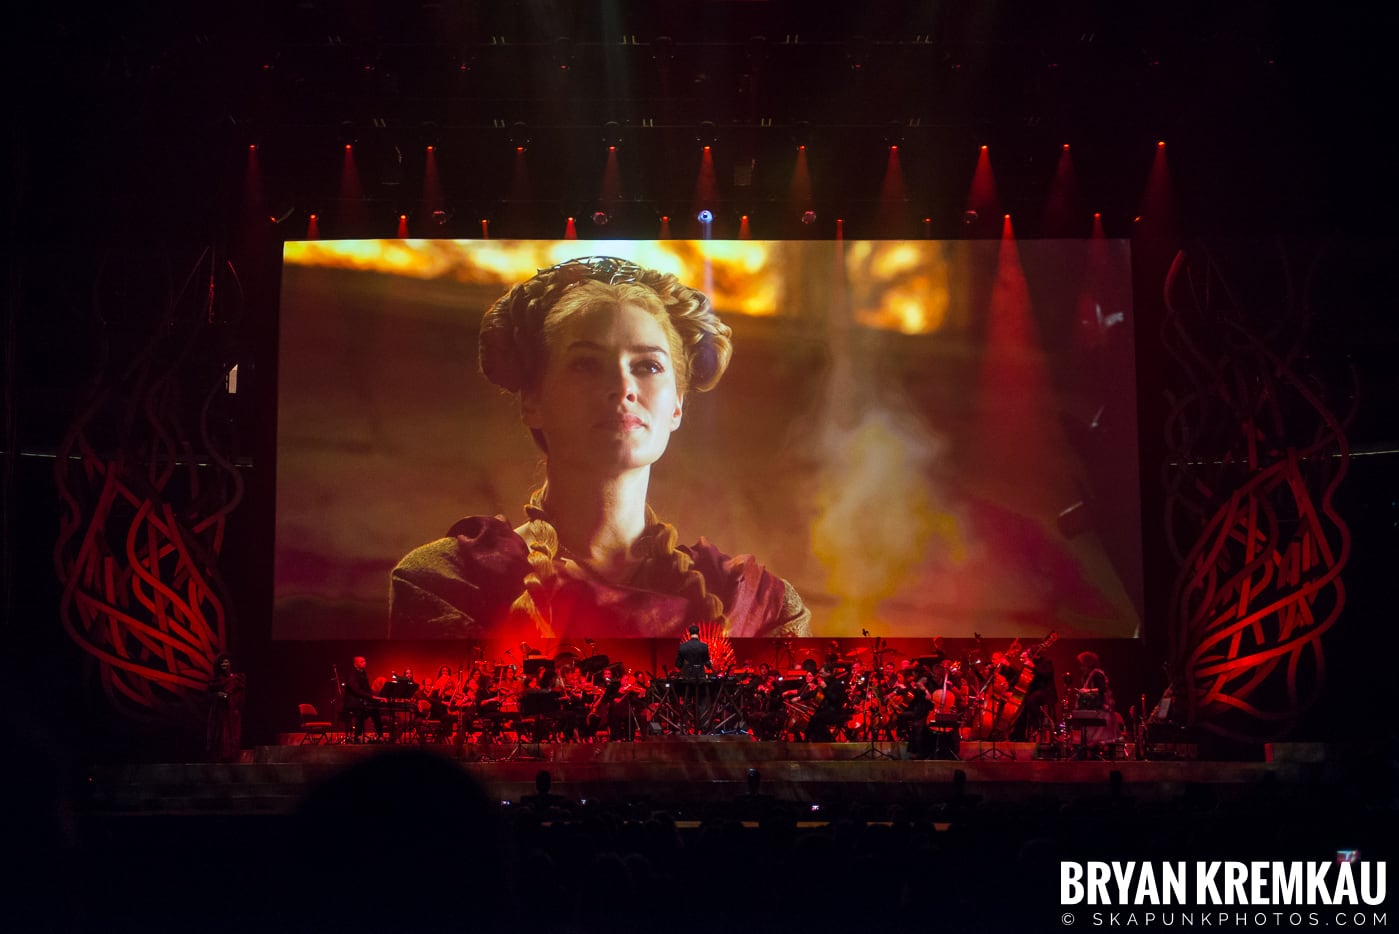 Game of Thrones Live Experience @ Prudential Center, Newark, NJ - 9.26.18 (23)